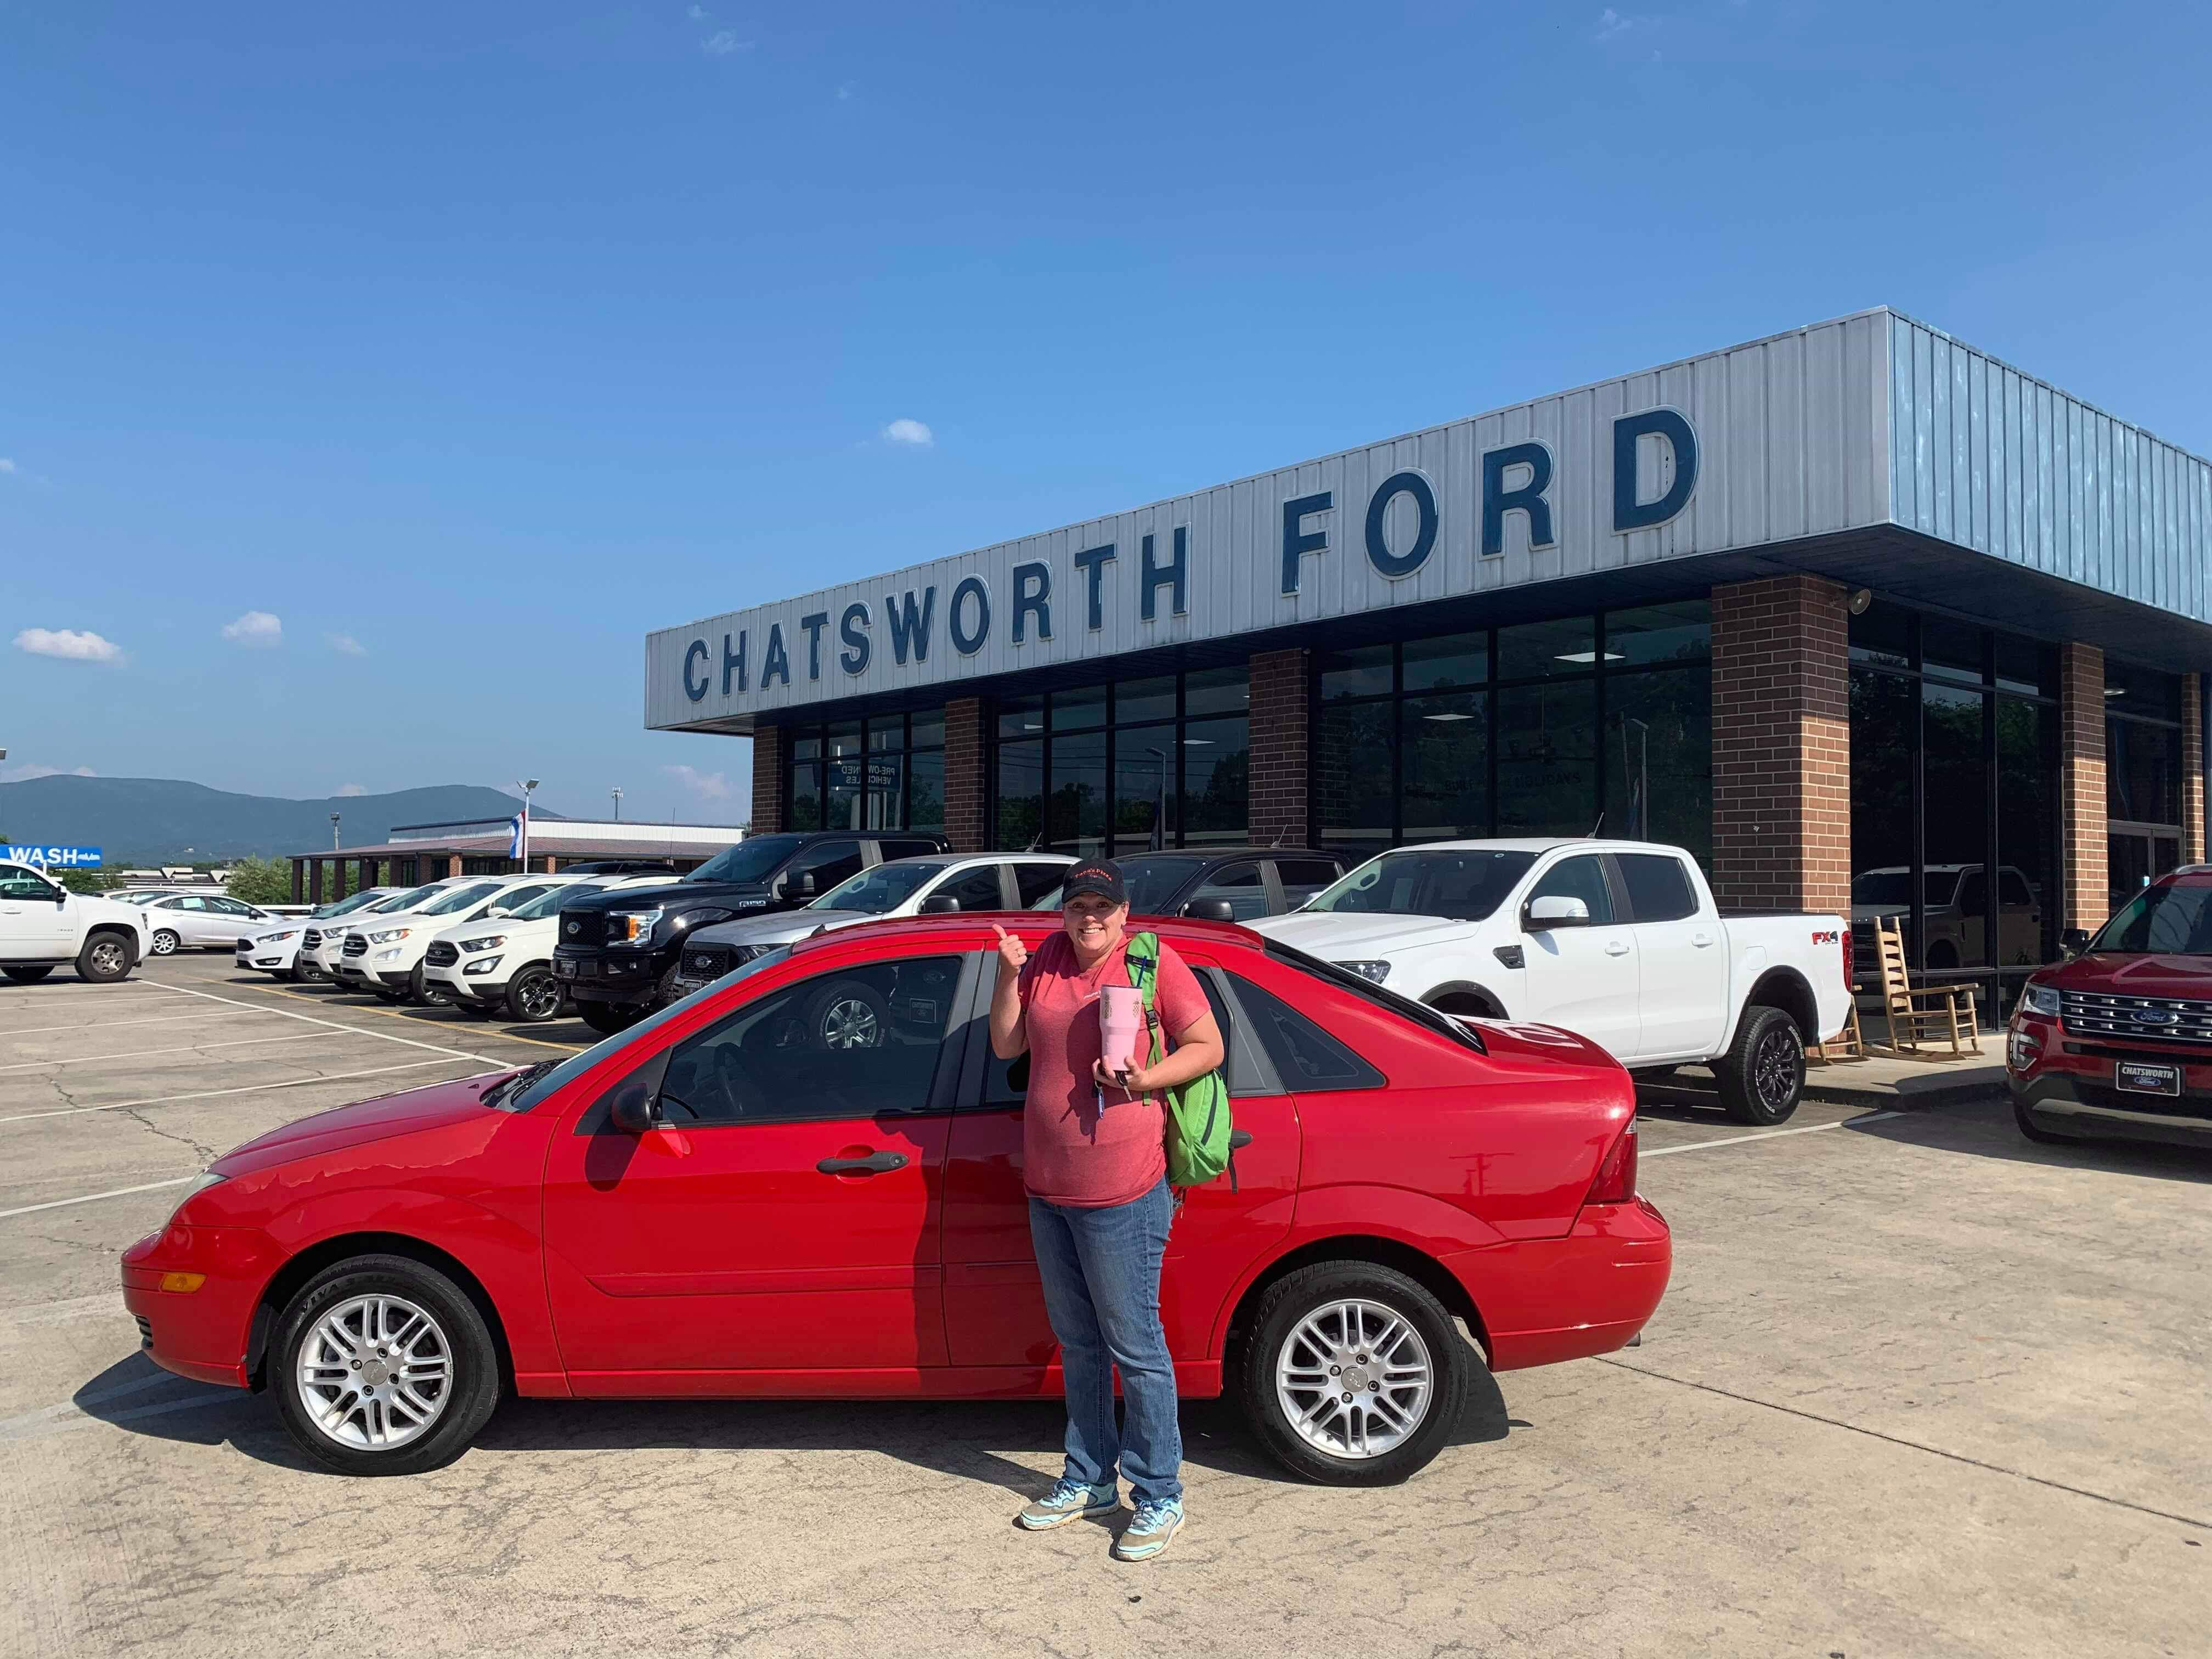 congratulations bree ross of chatsworth ga on your new 2007 focus sold by dustin patrick we appreciate your business car ford ford news chatsworth pinterest